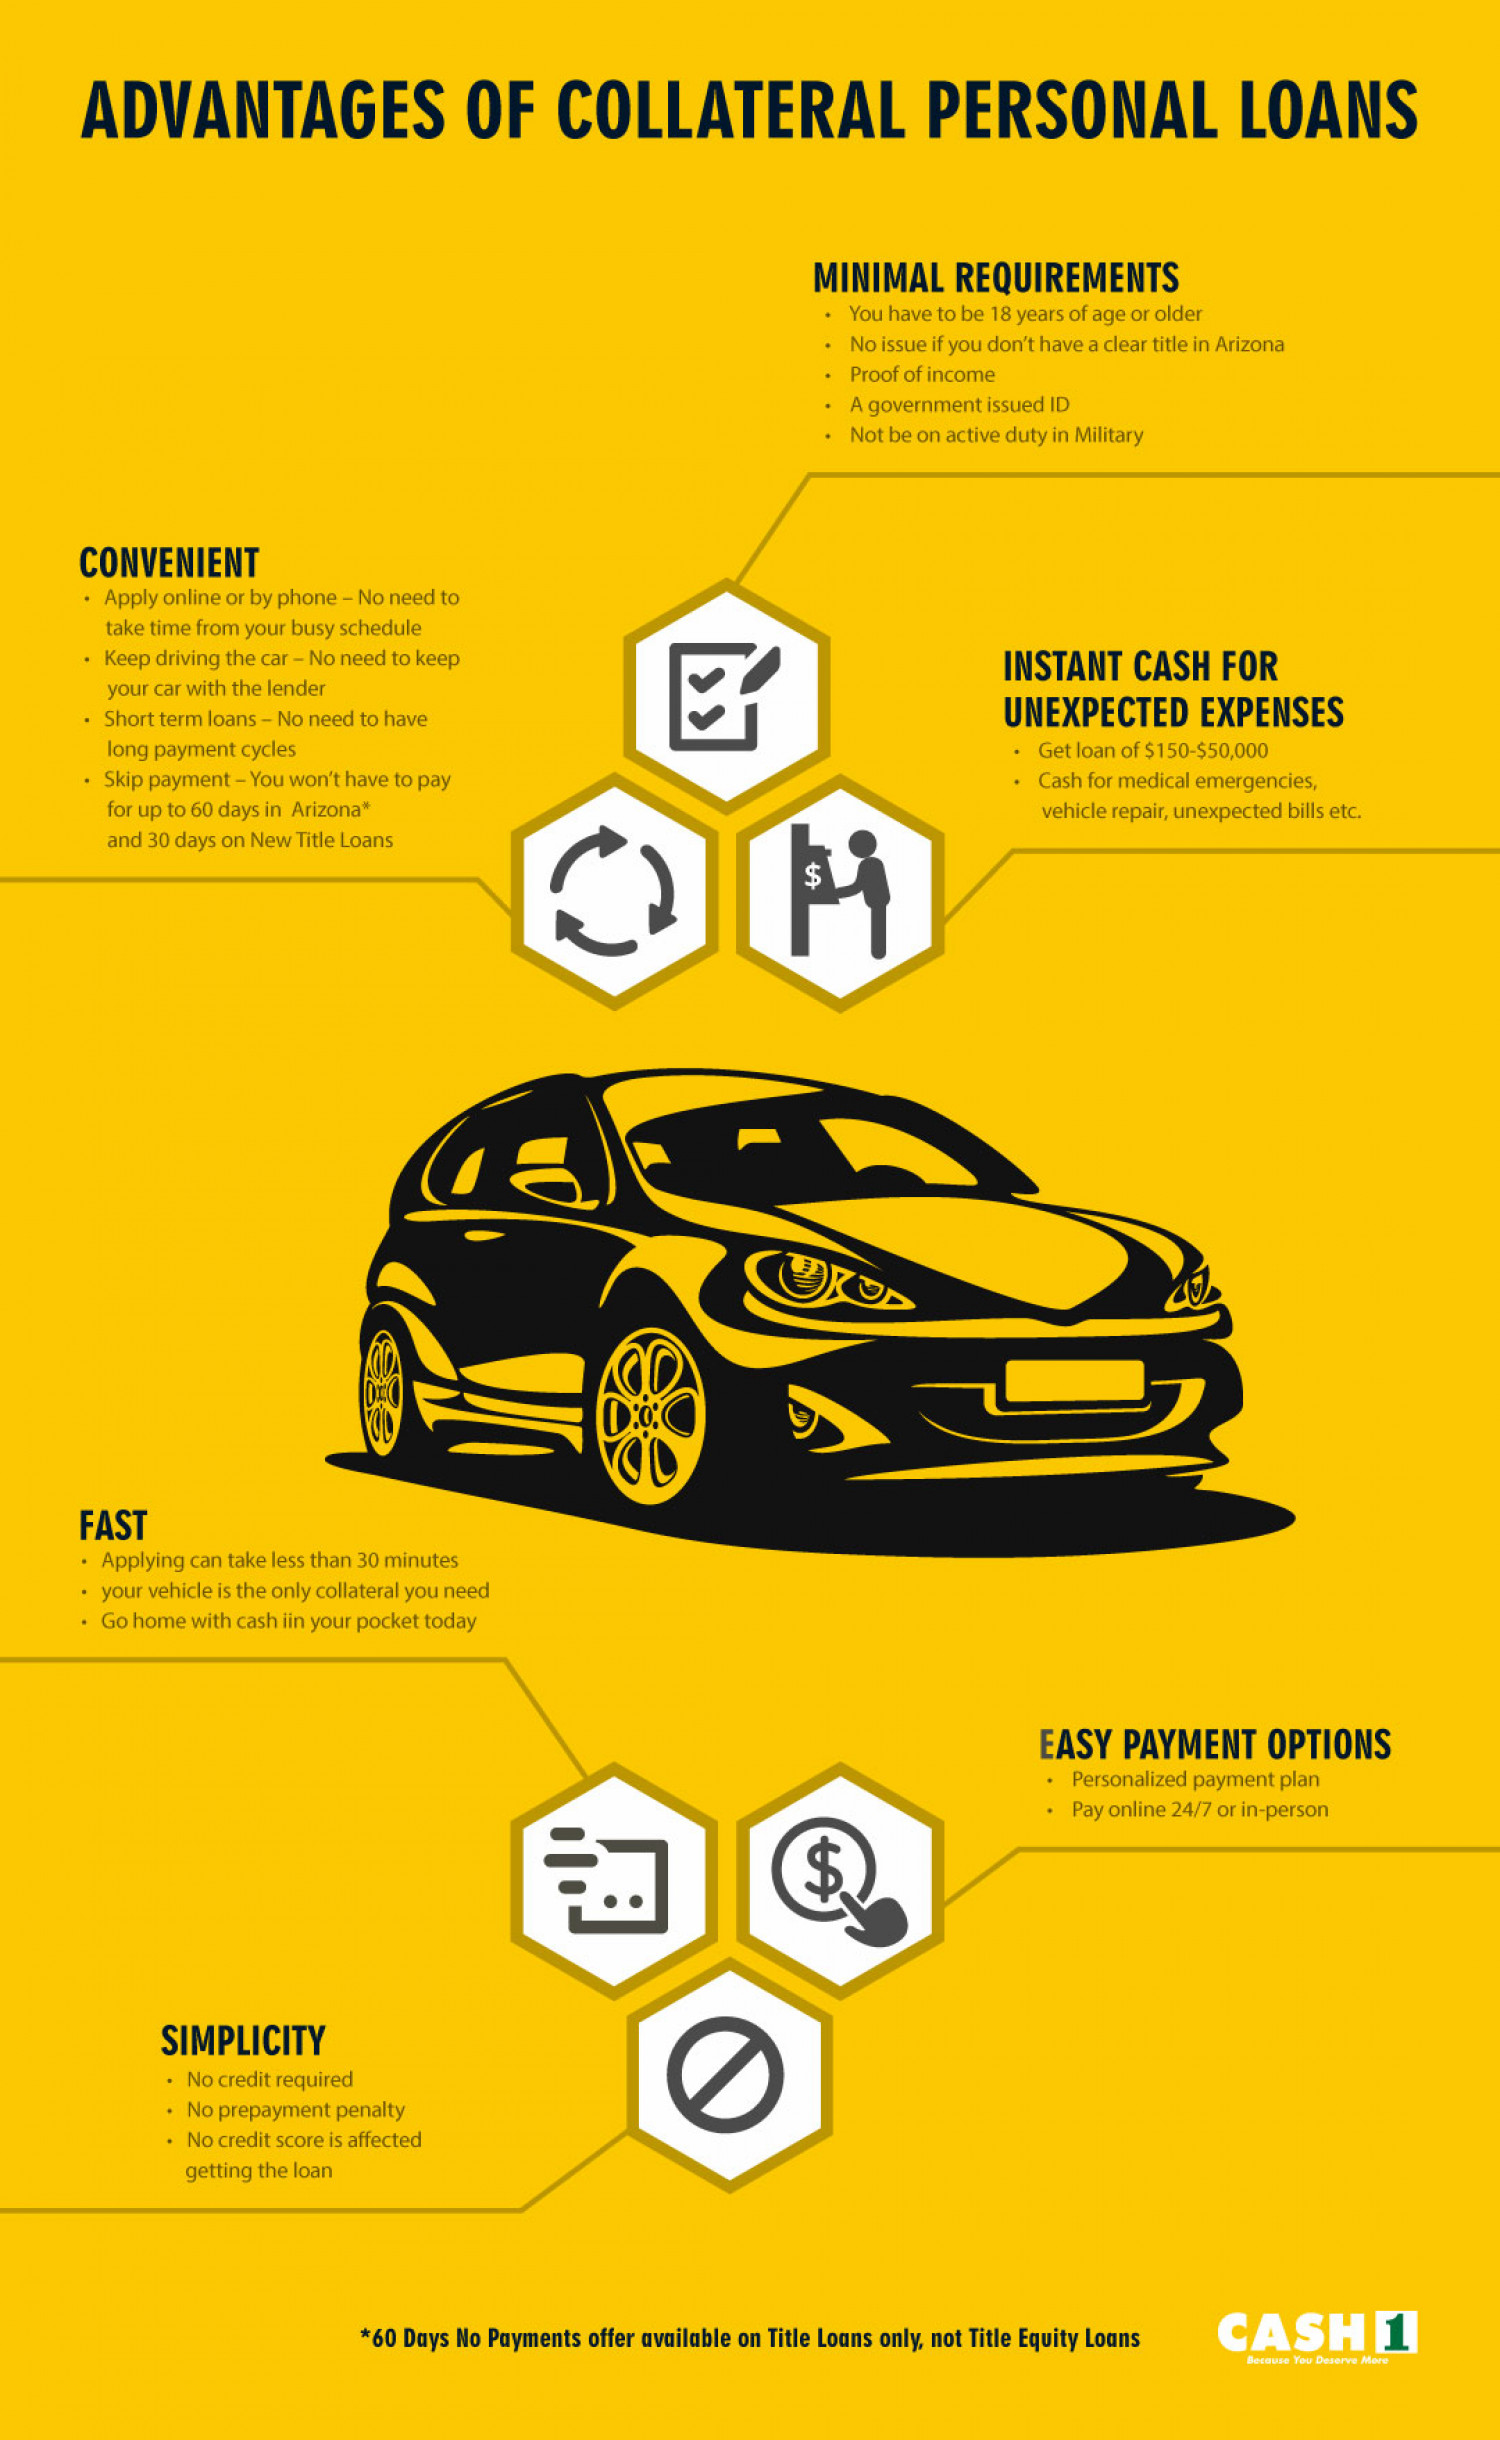 Benefits of Collateral Personal Loans  Infographic